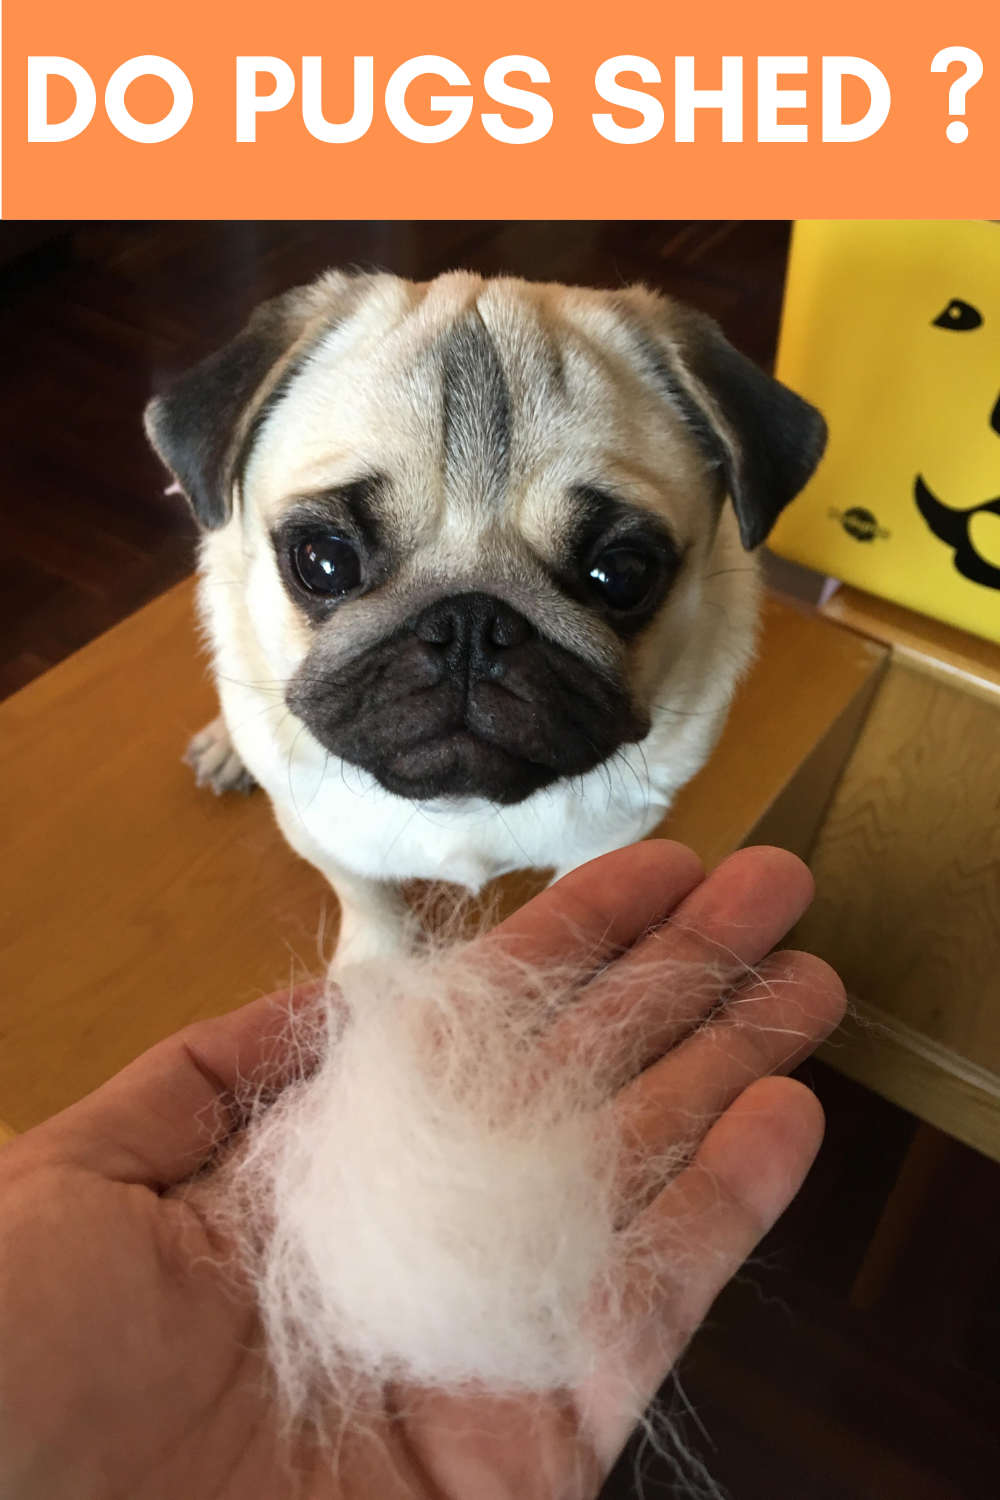 Do Pugs Shed ? Pug Shedding Tips in 2020 (With images